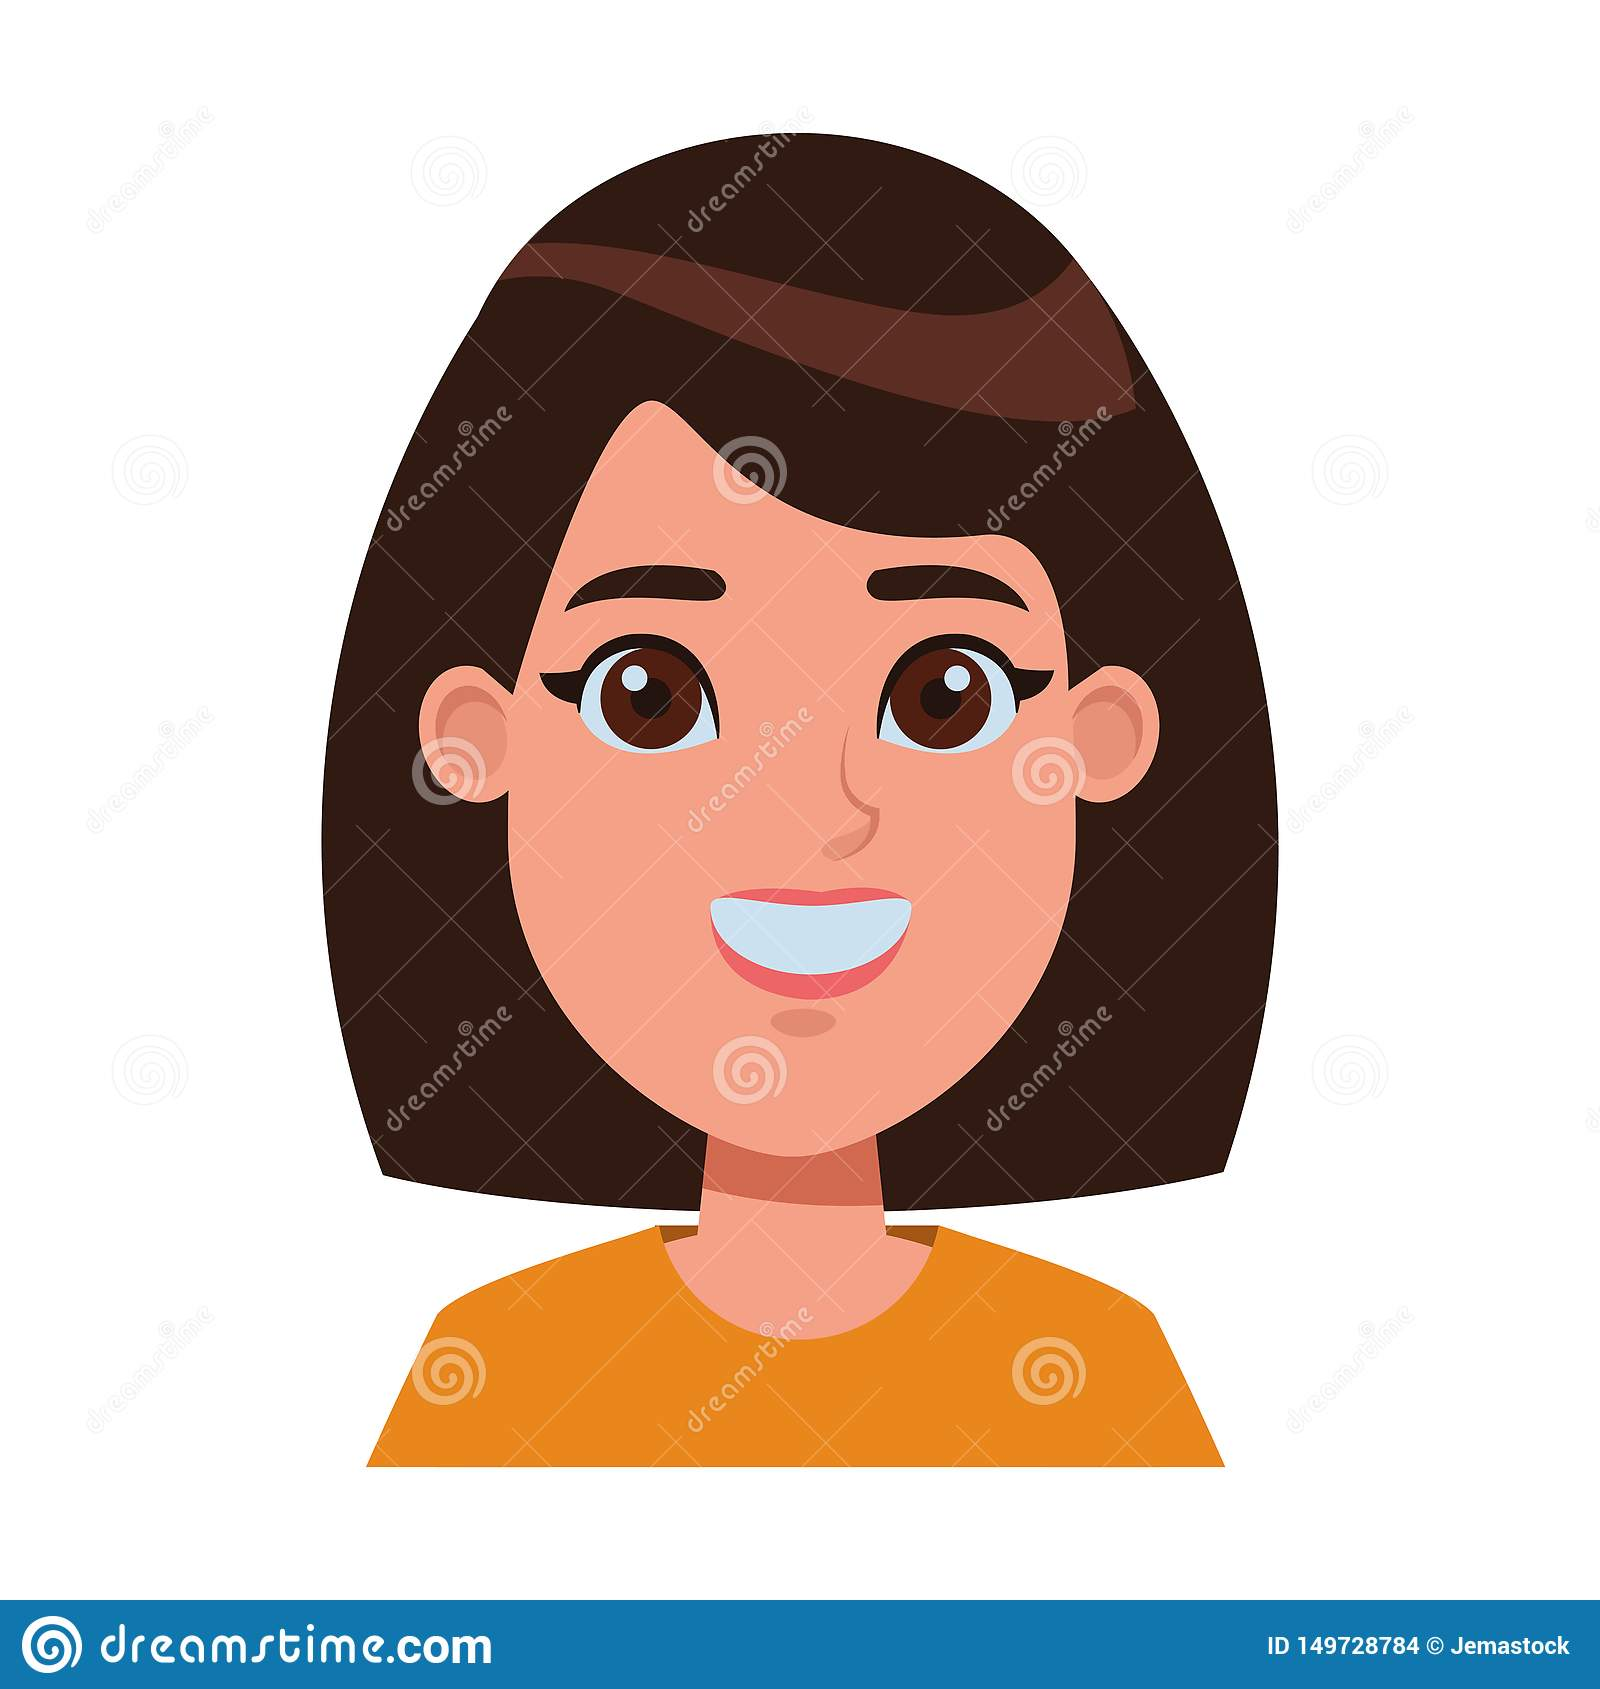 Young Woman Avatar Cartoon Character Profile Picture Stock Vector